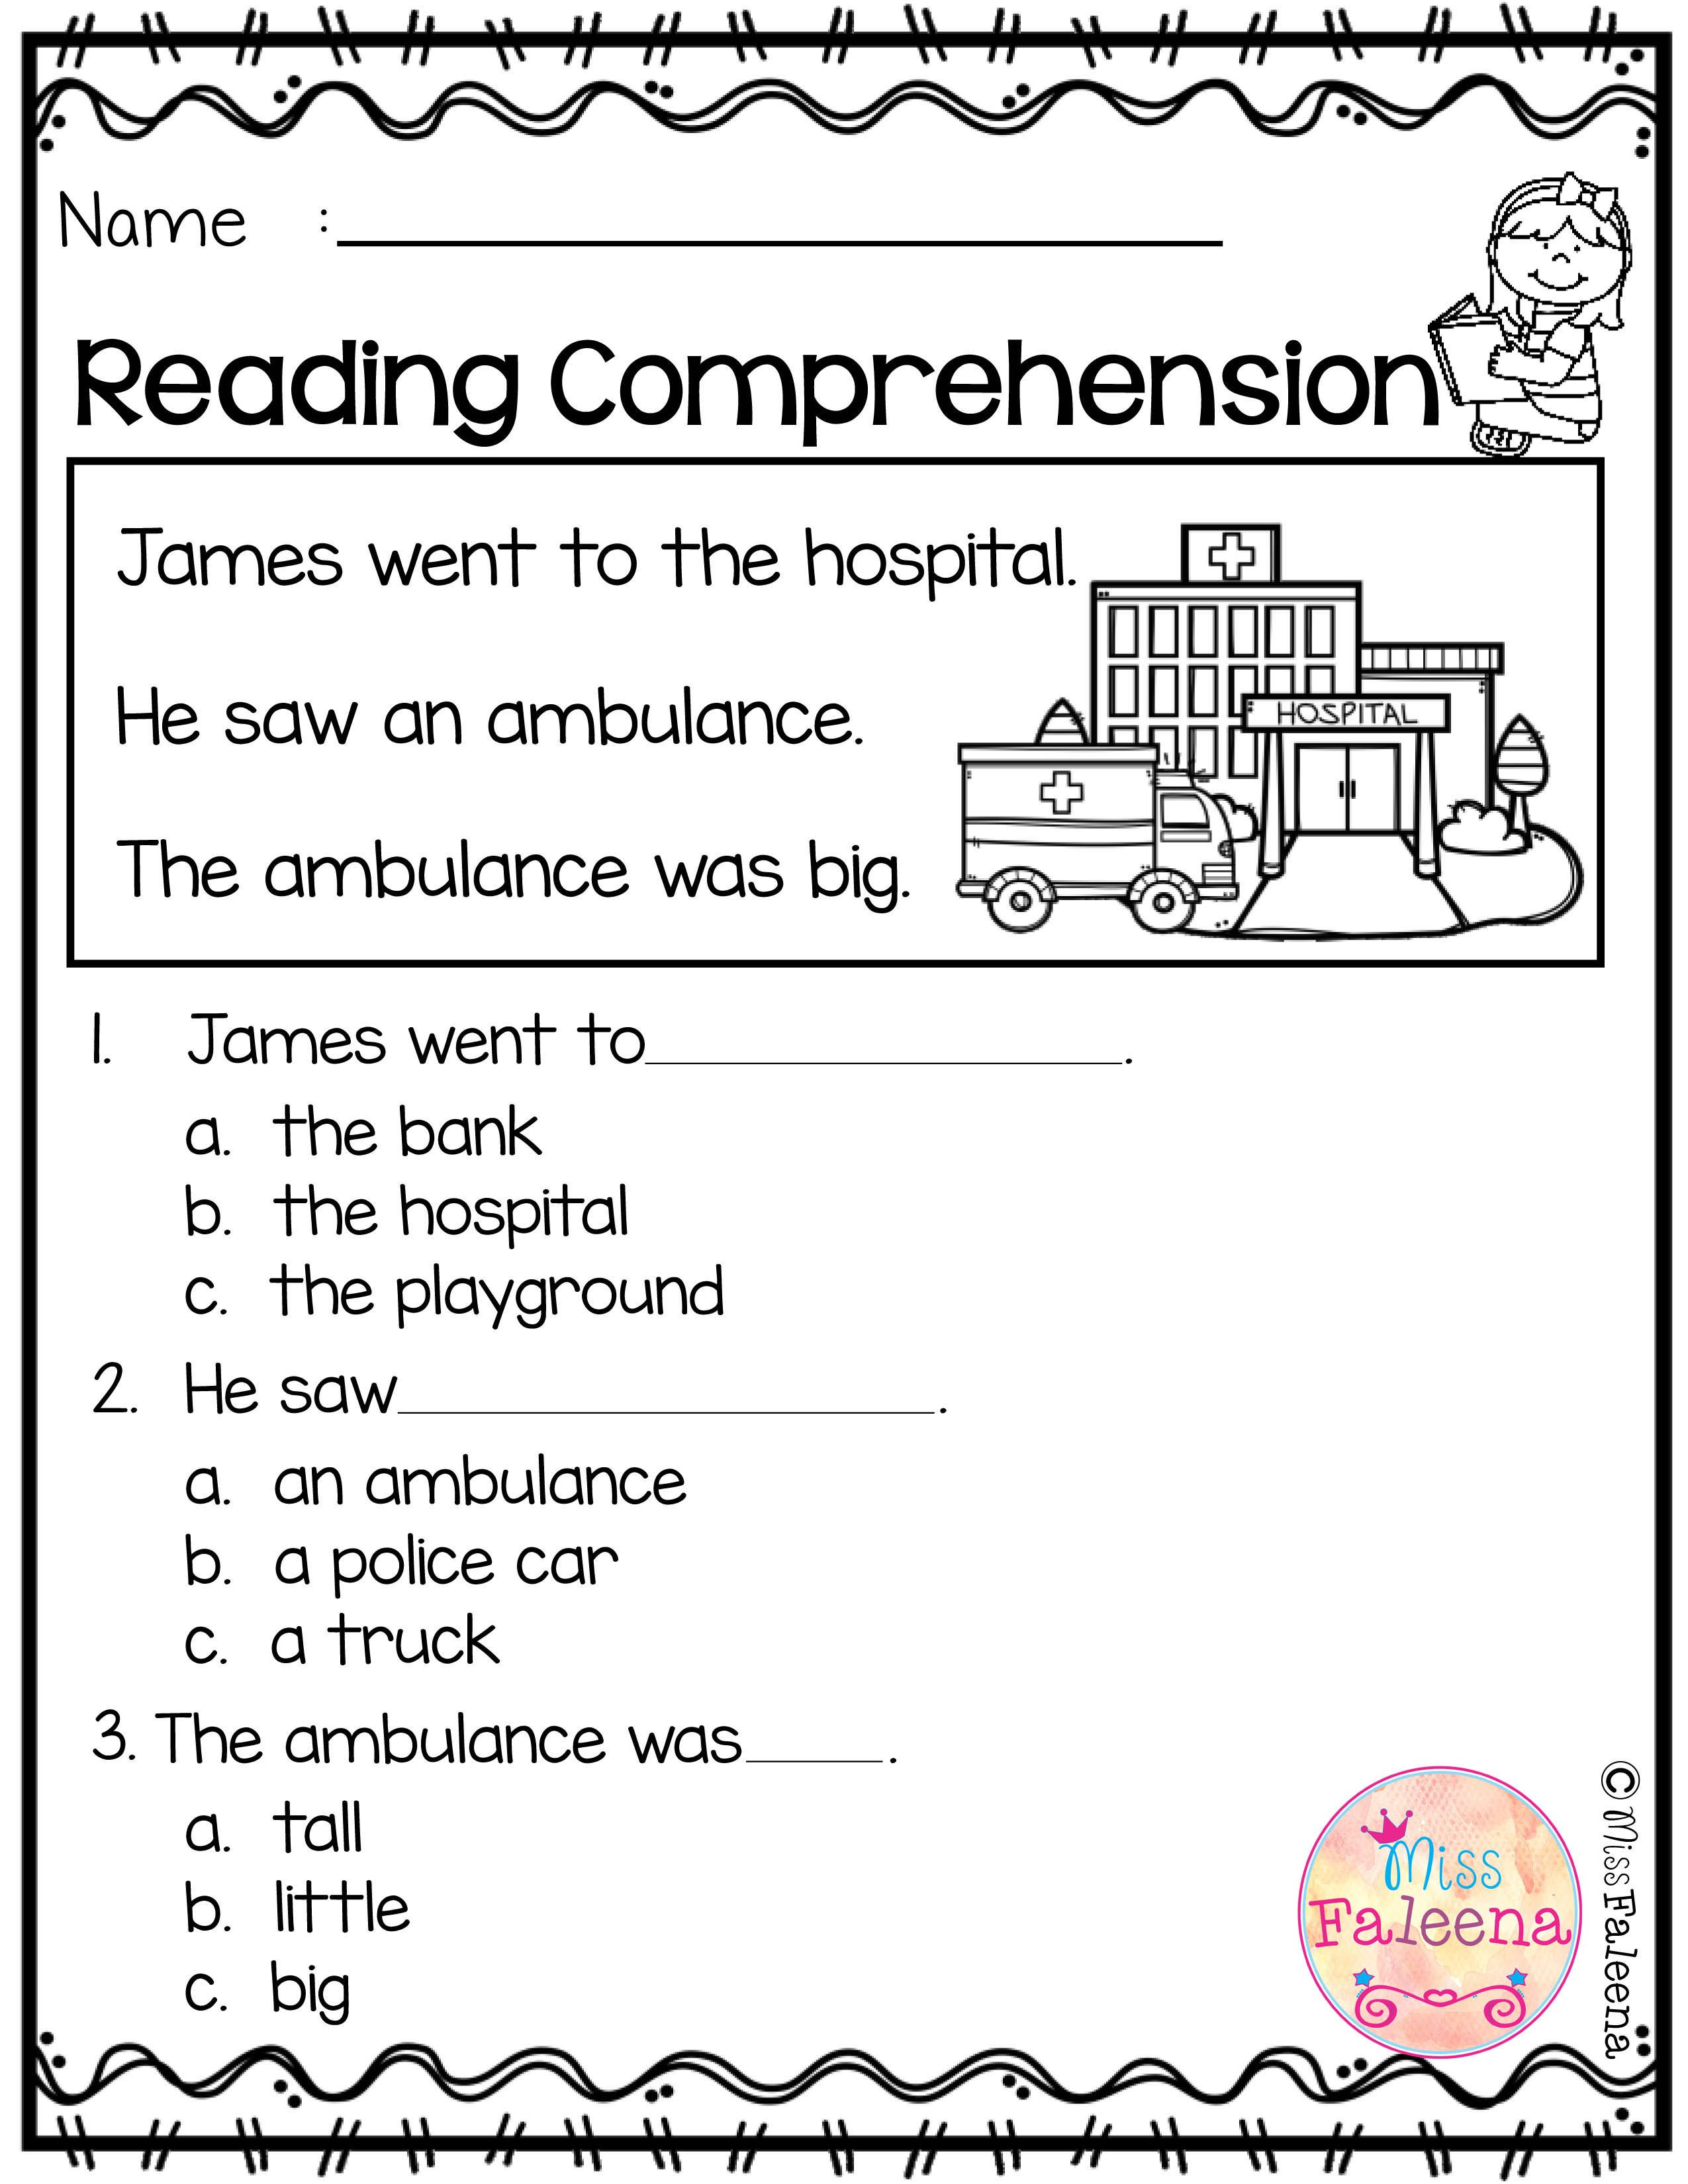 small resolution of https://dubaikhalifas.com/reading-comprehension-passages-questions-first-grade-kinder-bundle-in-2020-with-images/